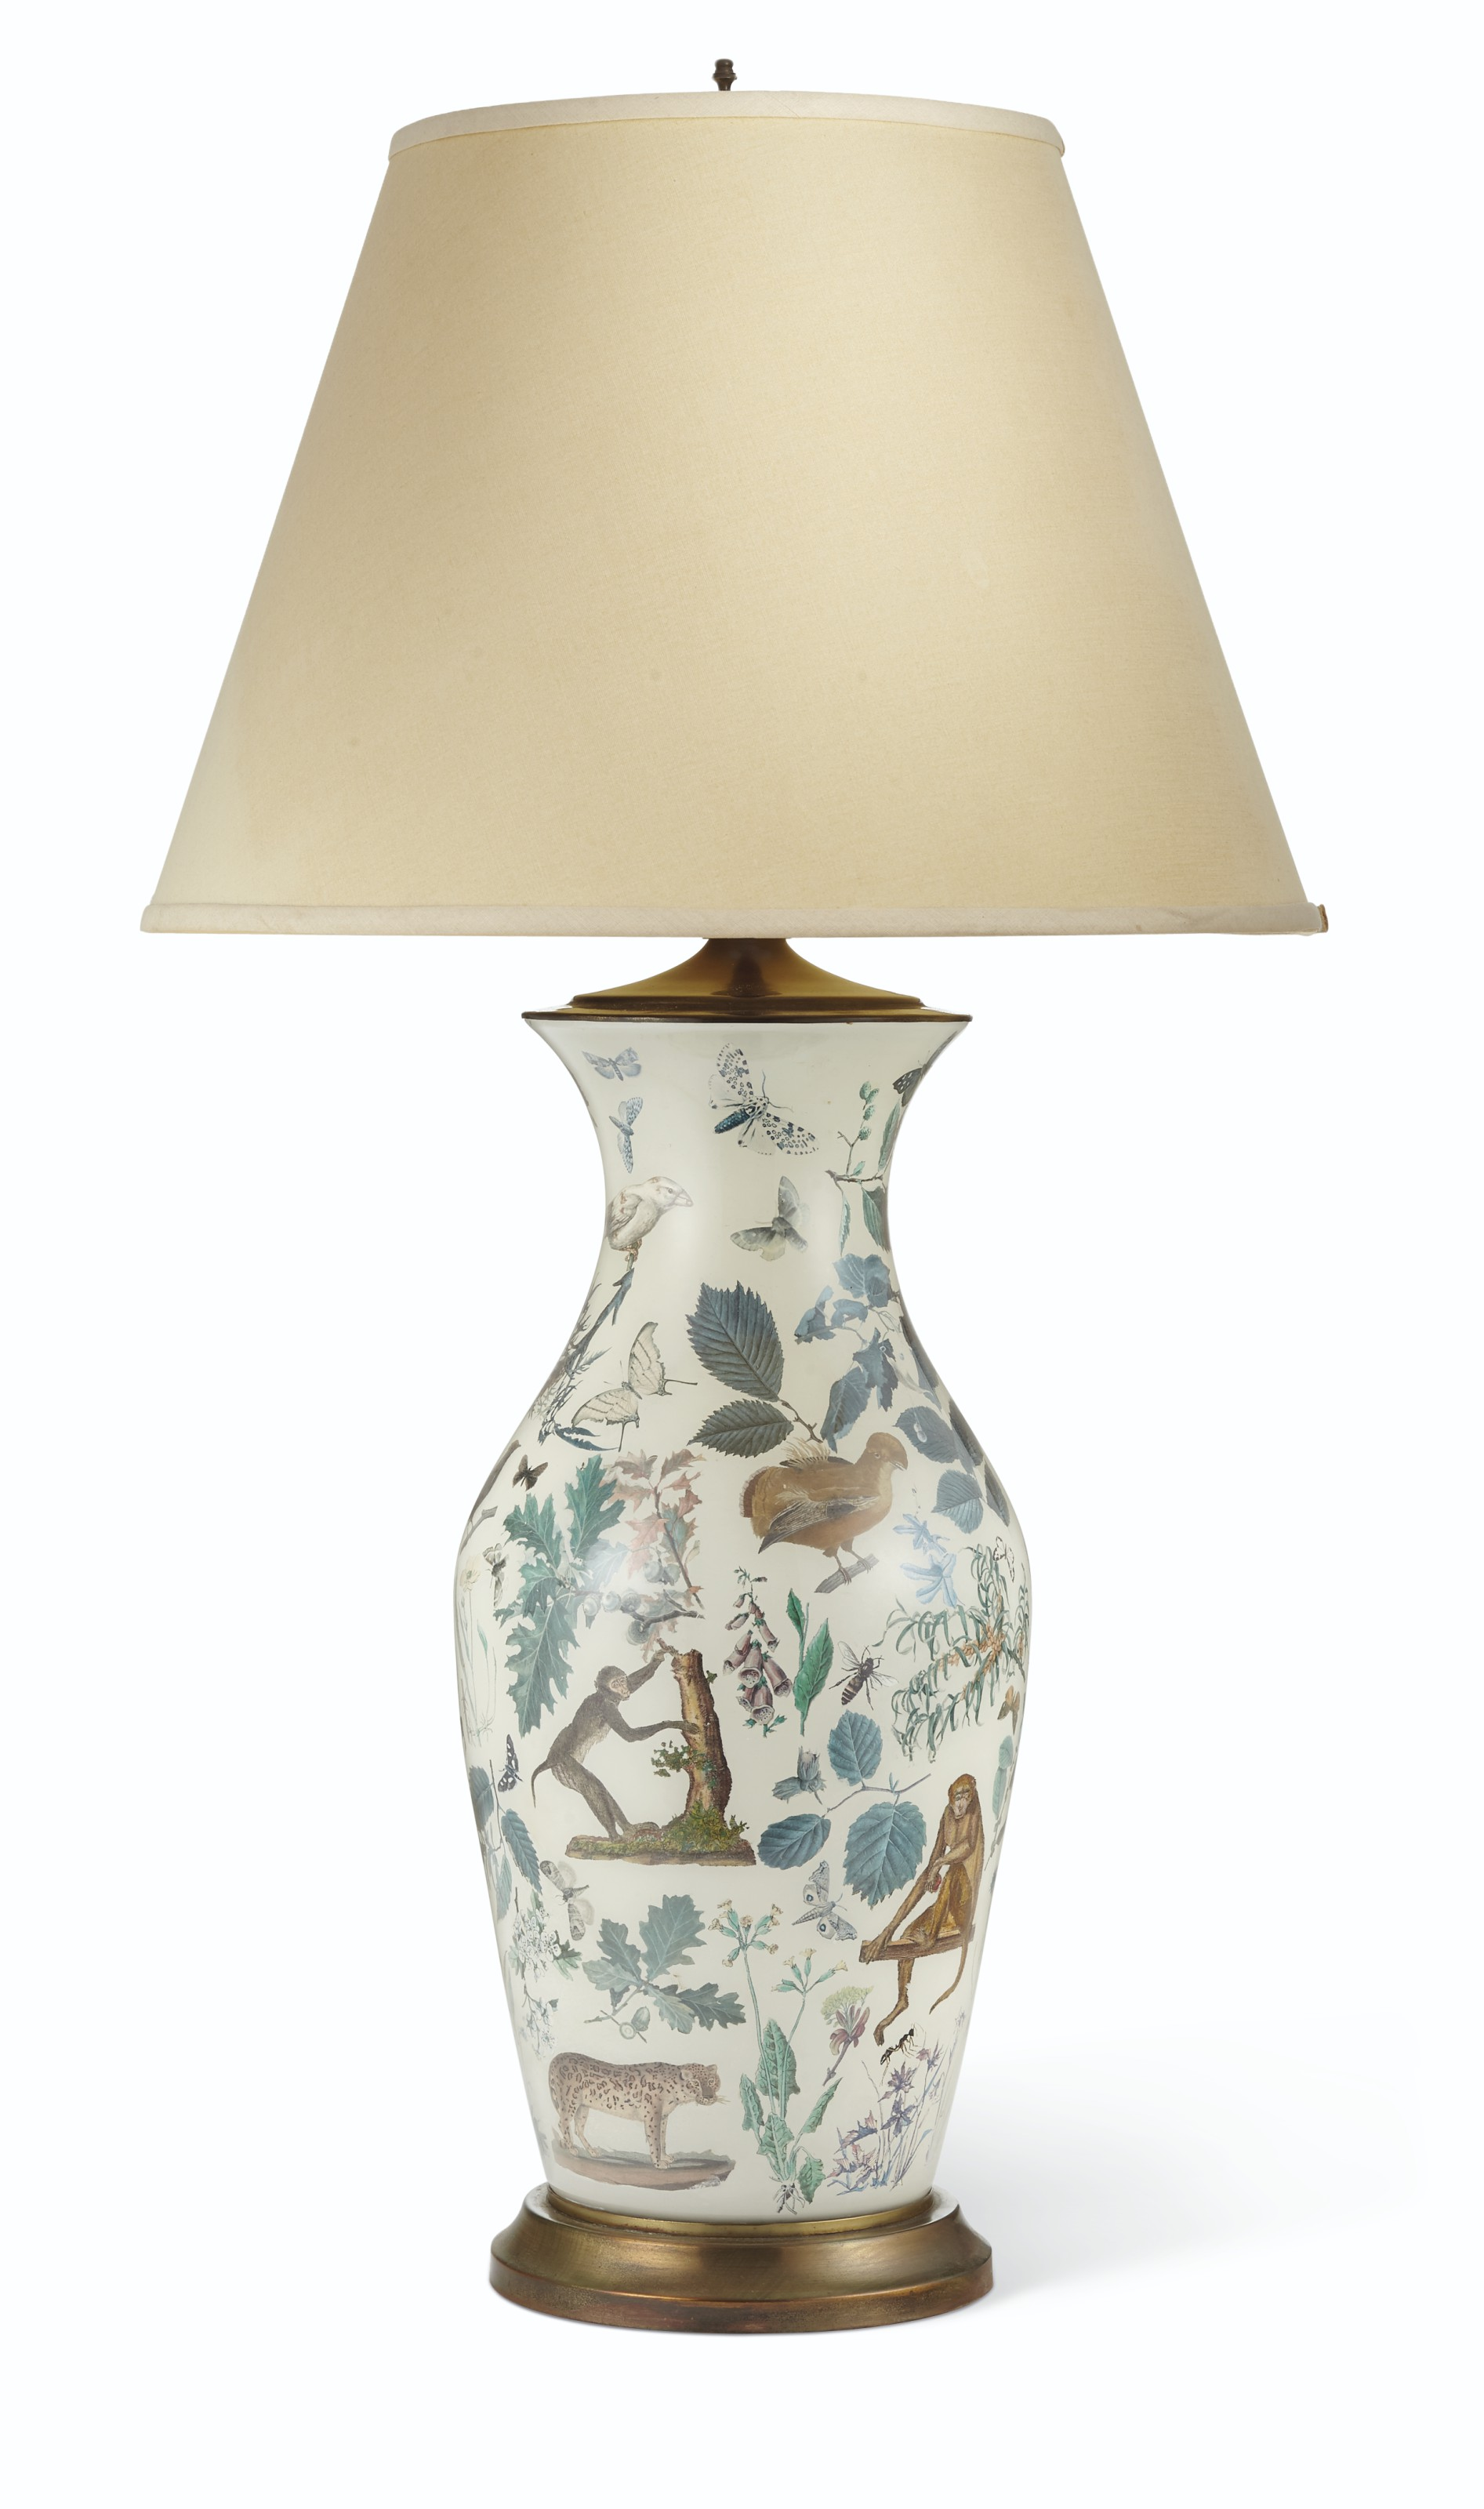 Decalcomania Baluster Vase Mounted As a Table Lamp from the Lee Radziwill Auction at Christie's